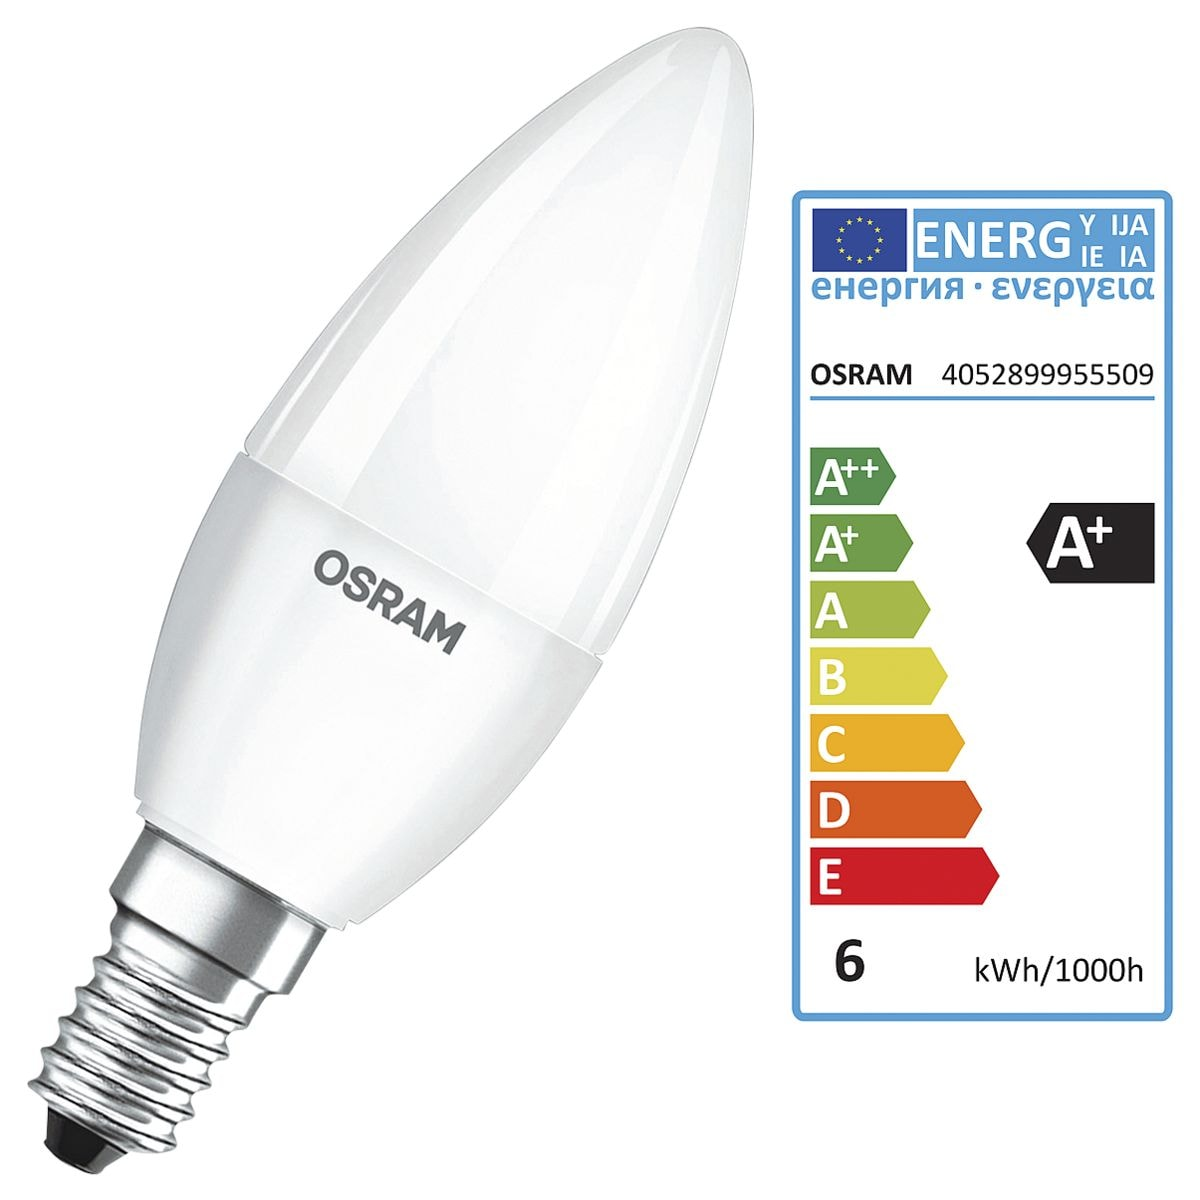 Osram LED-Lampe »Base Classic B«